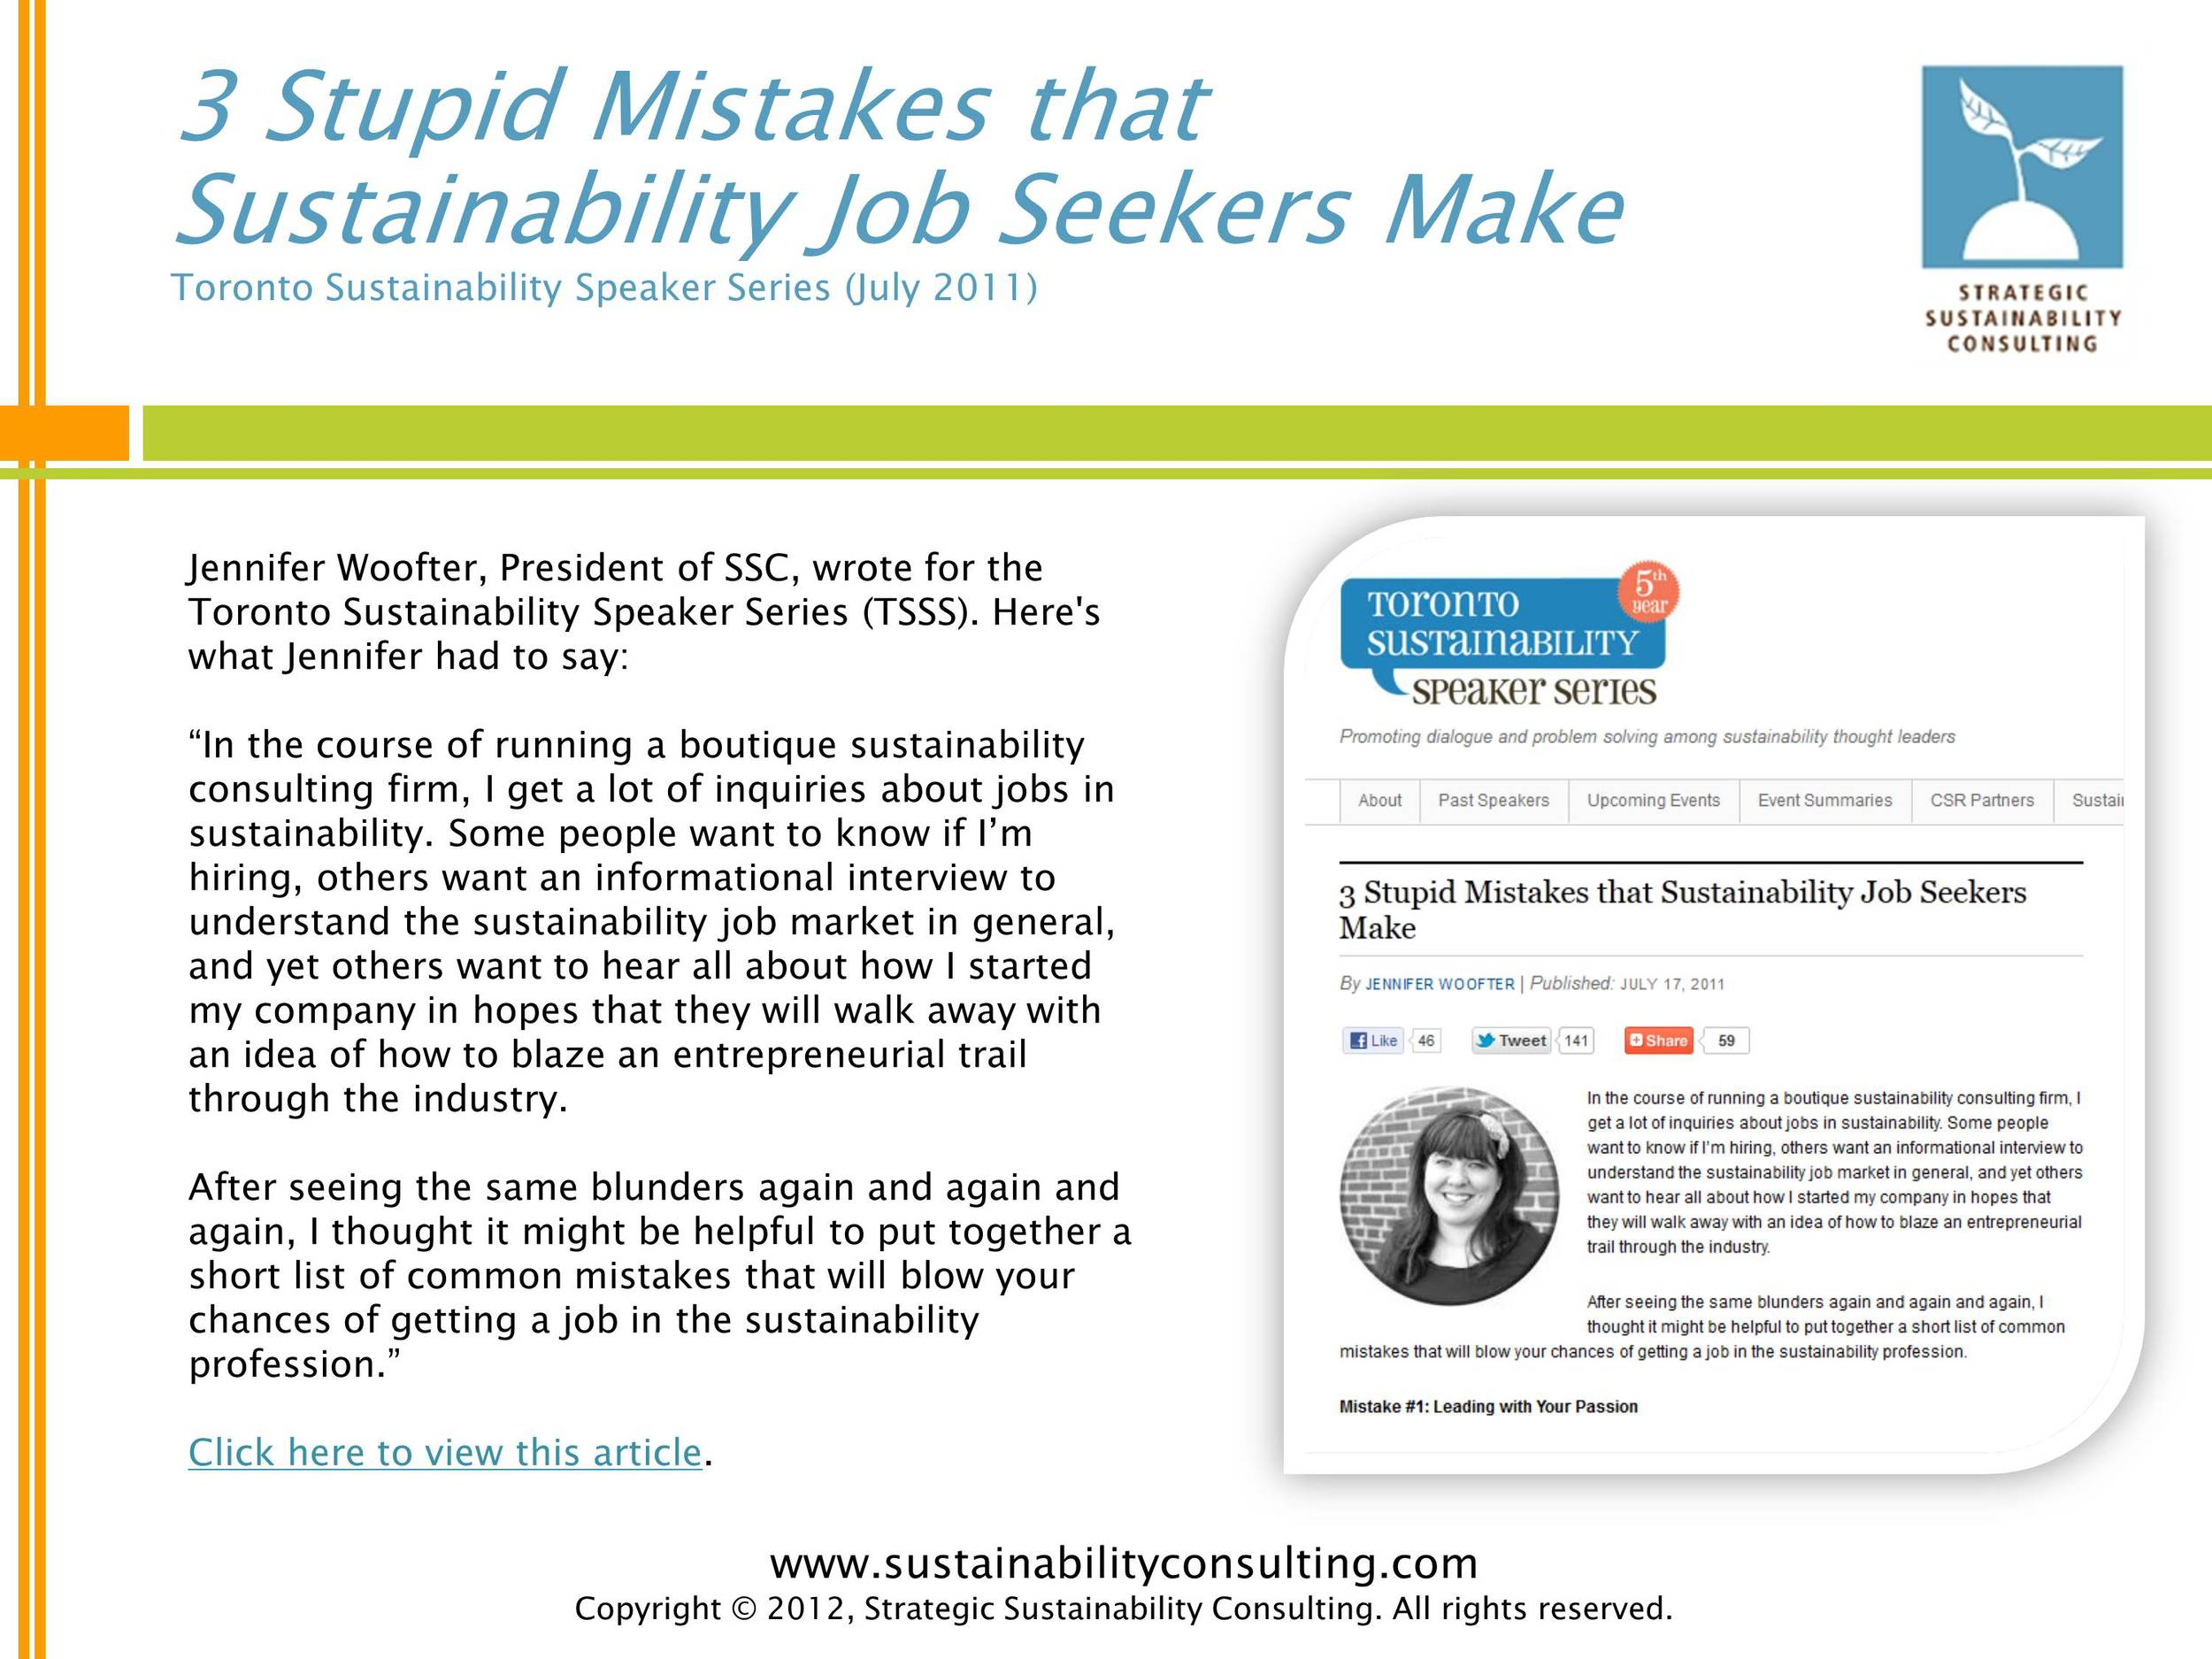 3 Stupid Mistakes that Sustainability Job Seekers Make